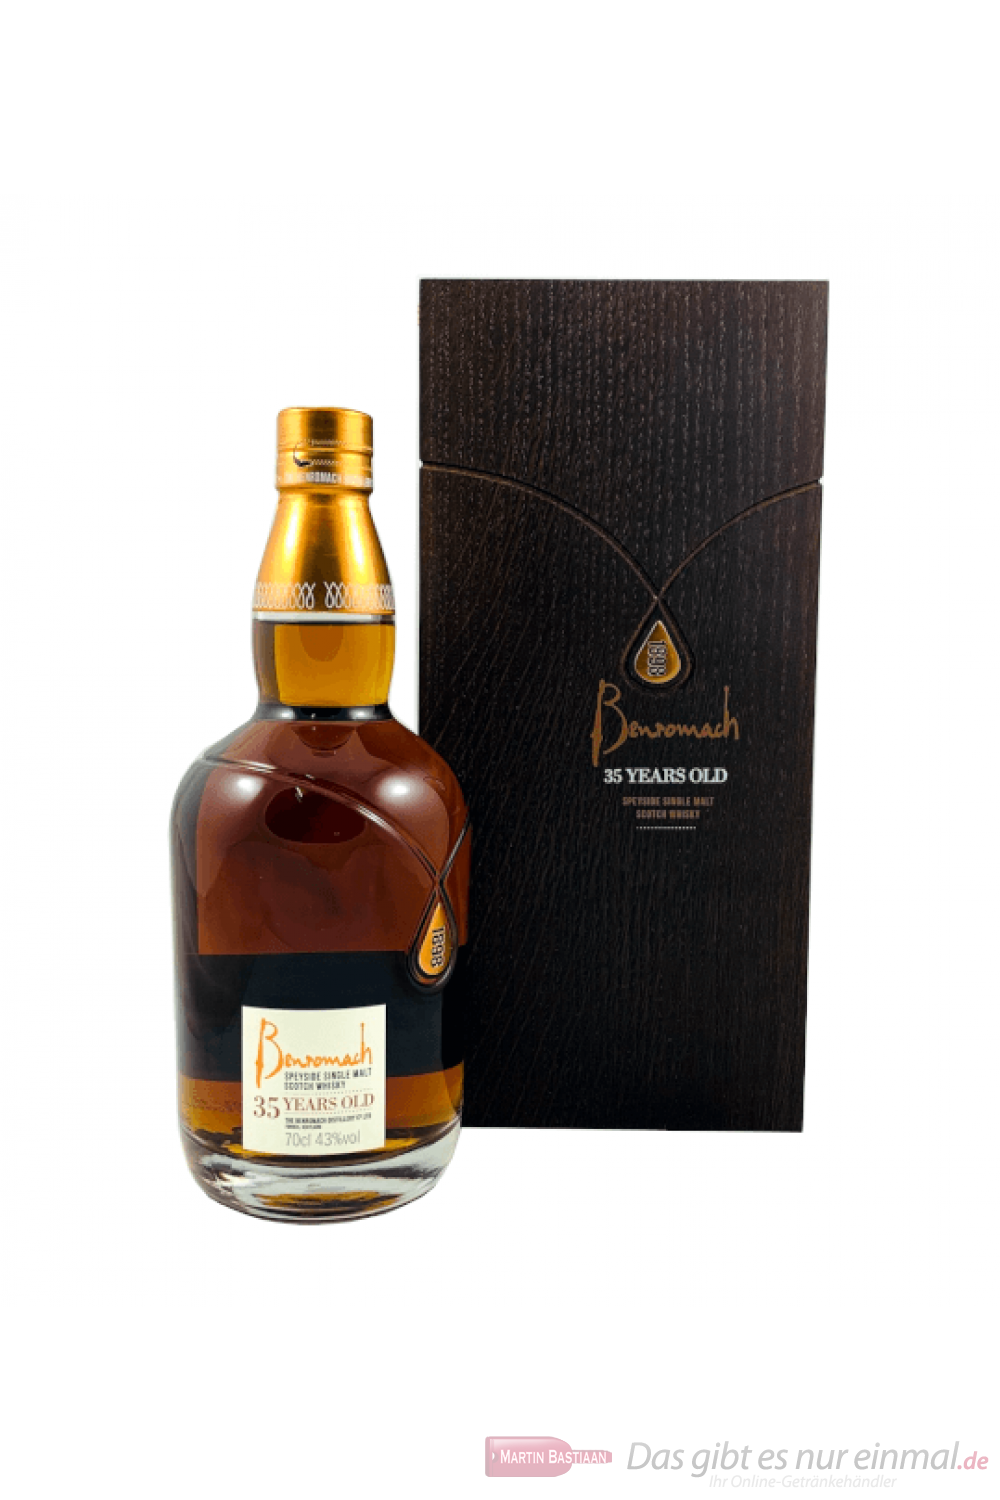 Benromach 35 Years Single Malt Scotch Whisky 0,7l